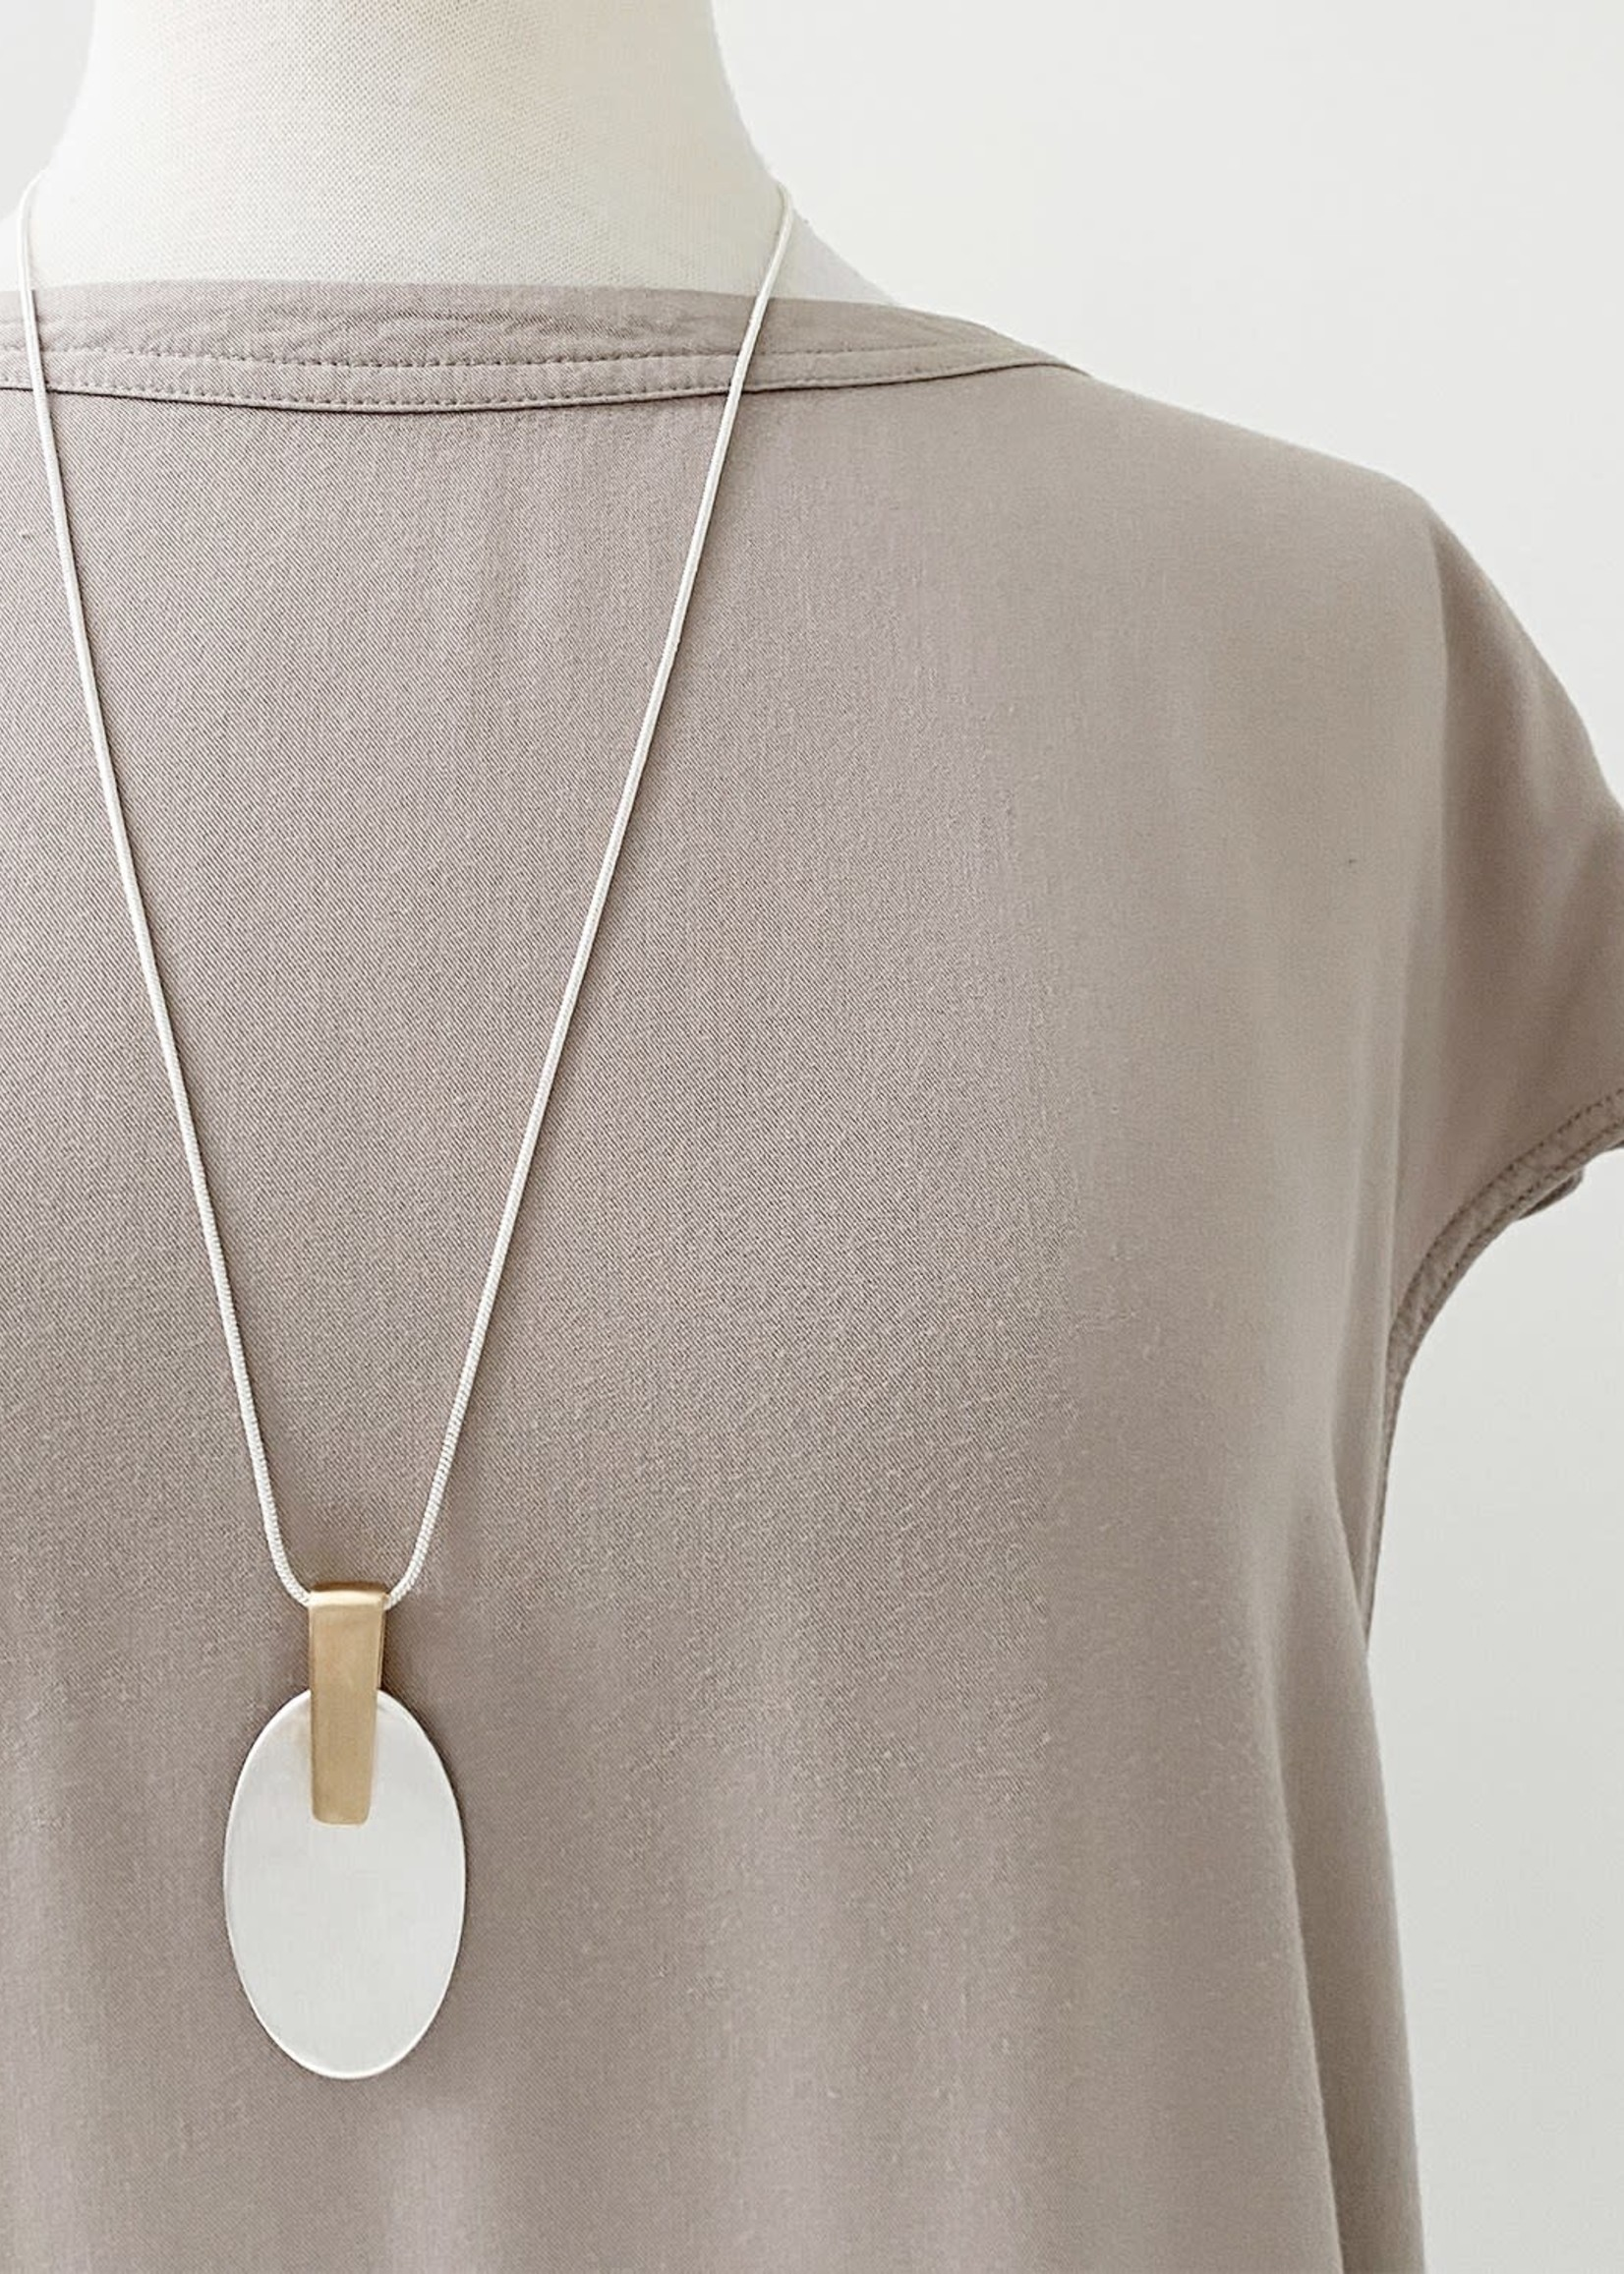 Caracol Caracol Pendant  Silver Chain with GLD/Silver Pendant